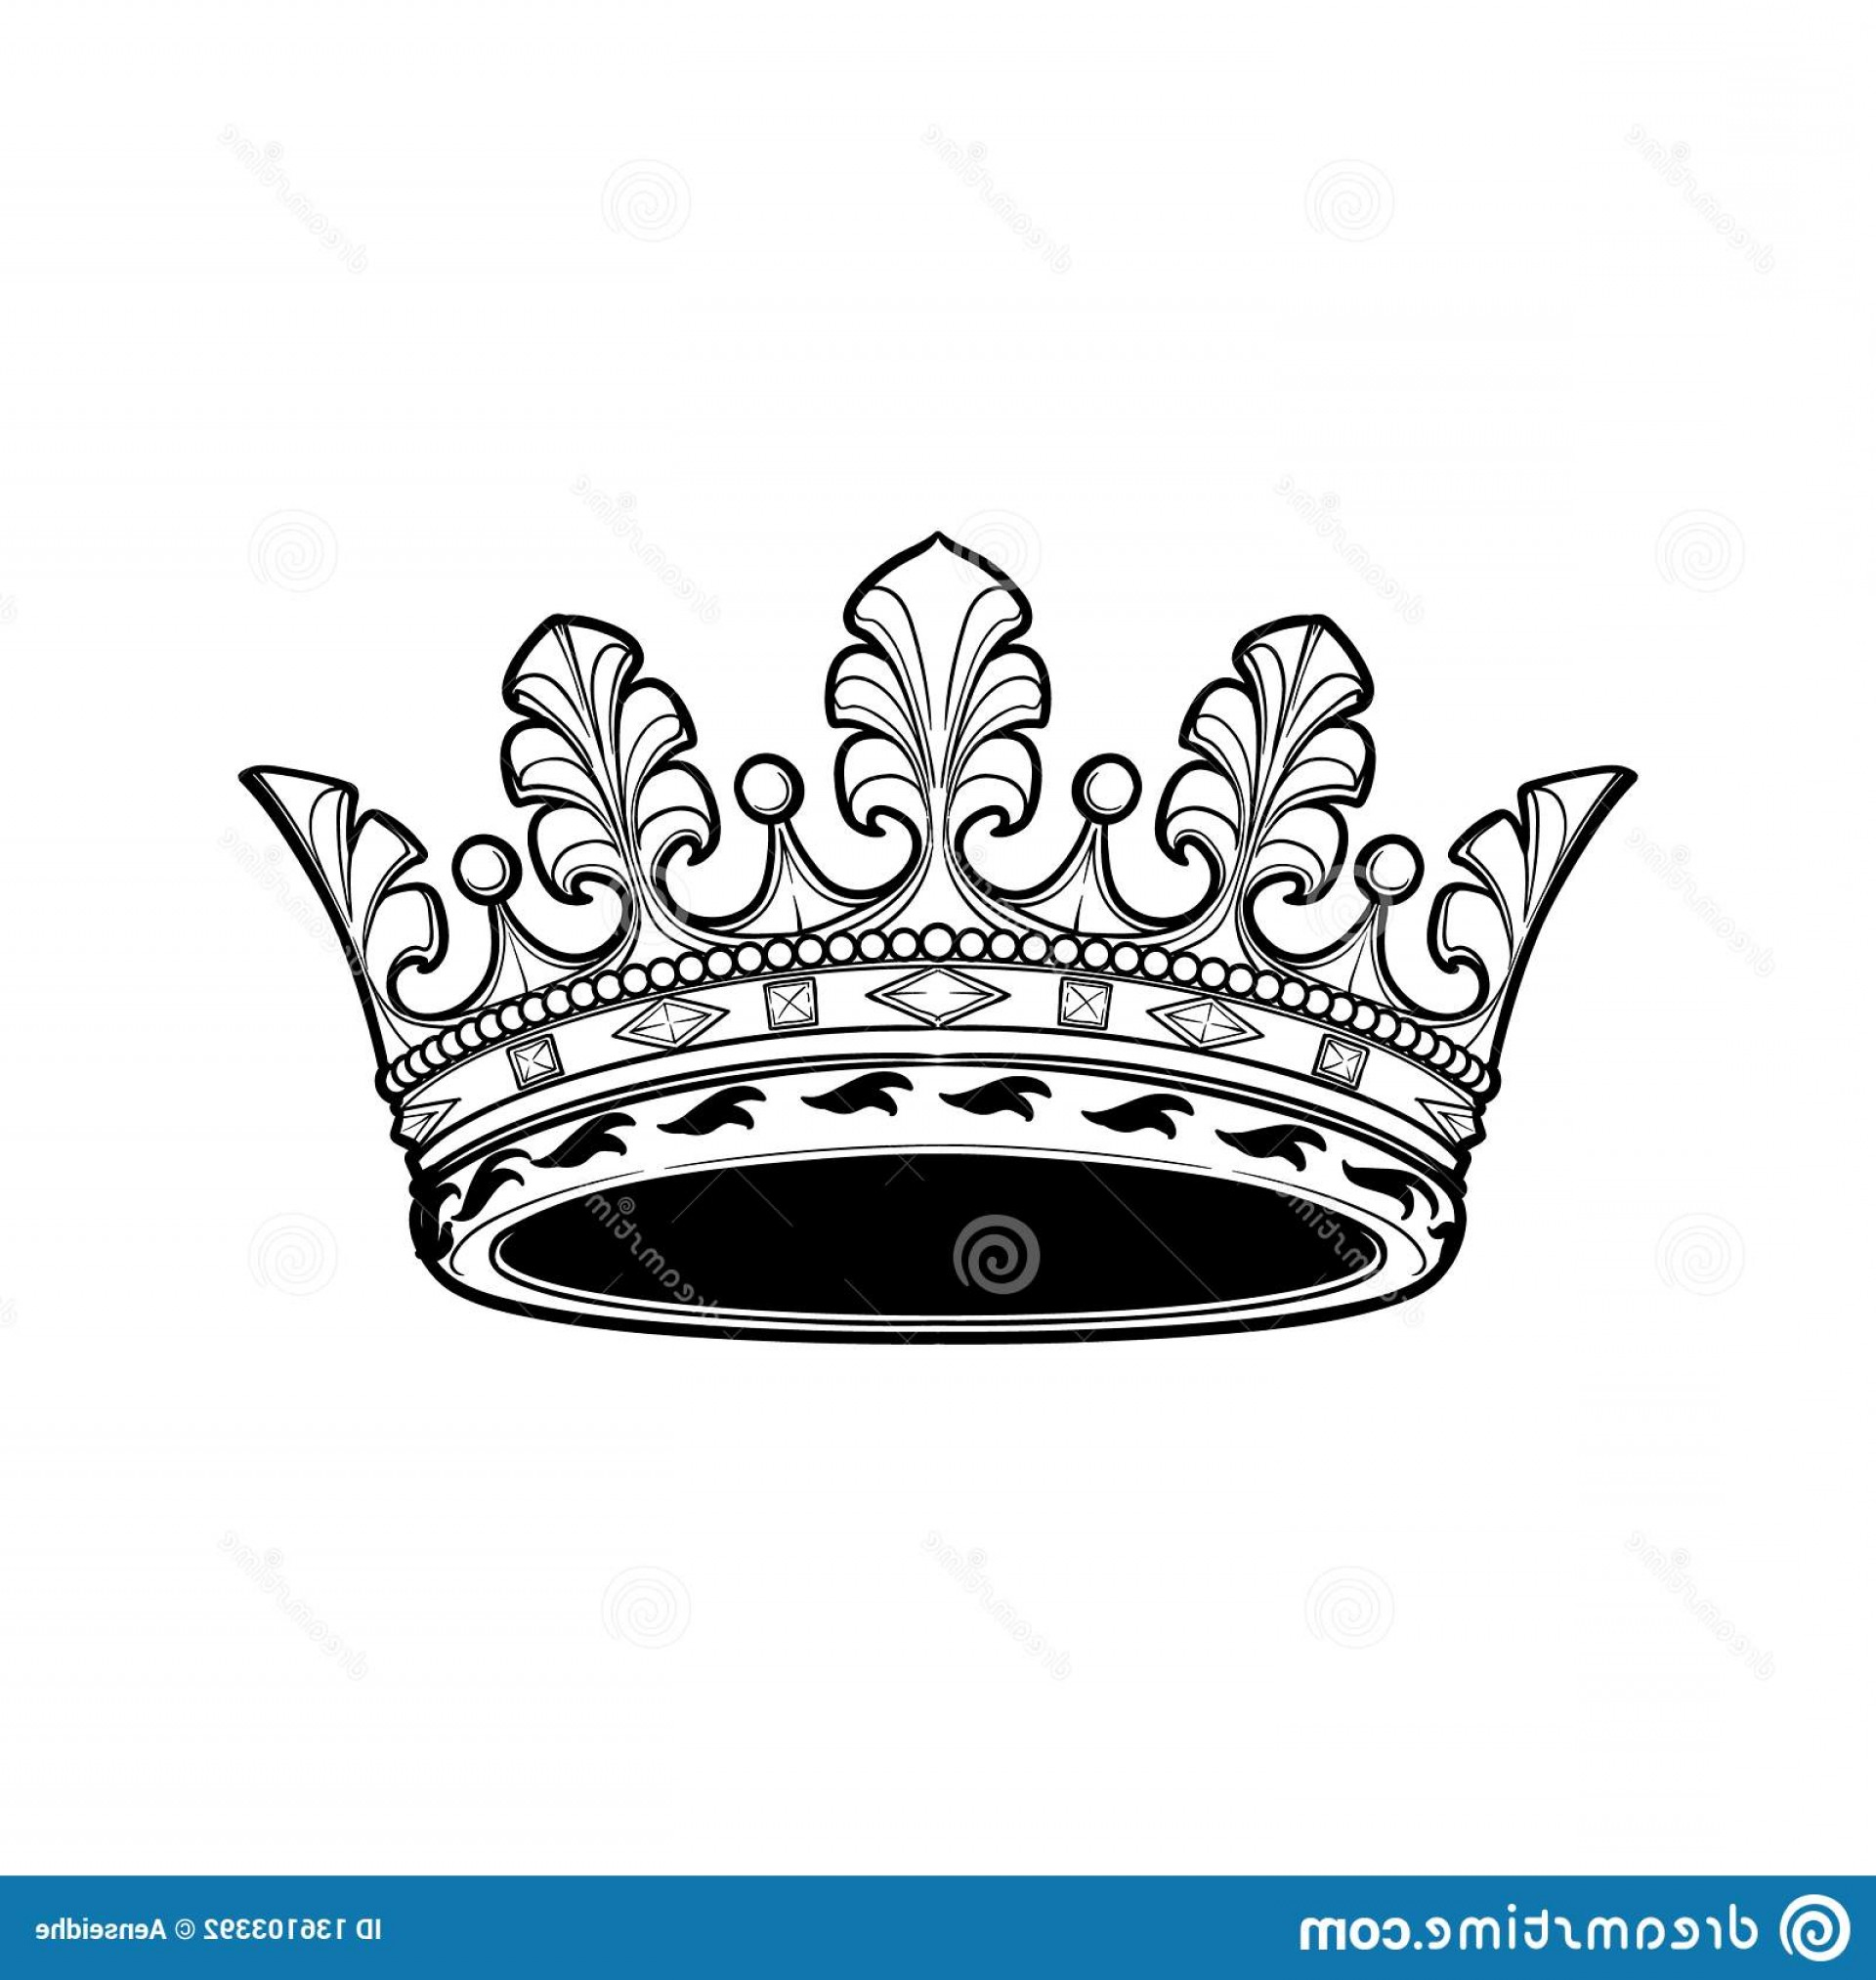 Detailed Tattoo Vector Images: Filigree High Detailed Ducal Crown Element Design Logo Emblem Tattoo Vector Illustration Isolated White Background Image